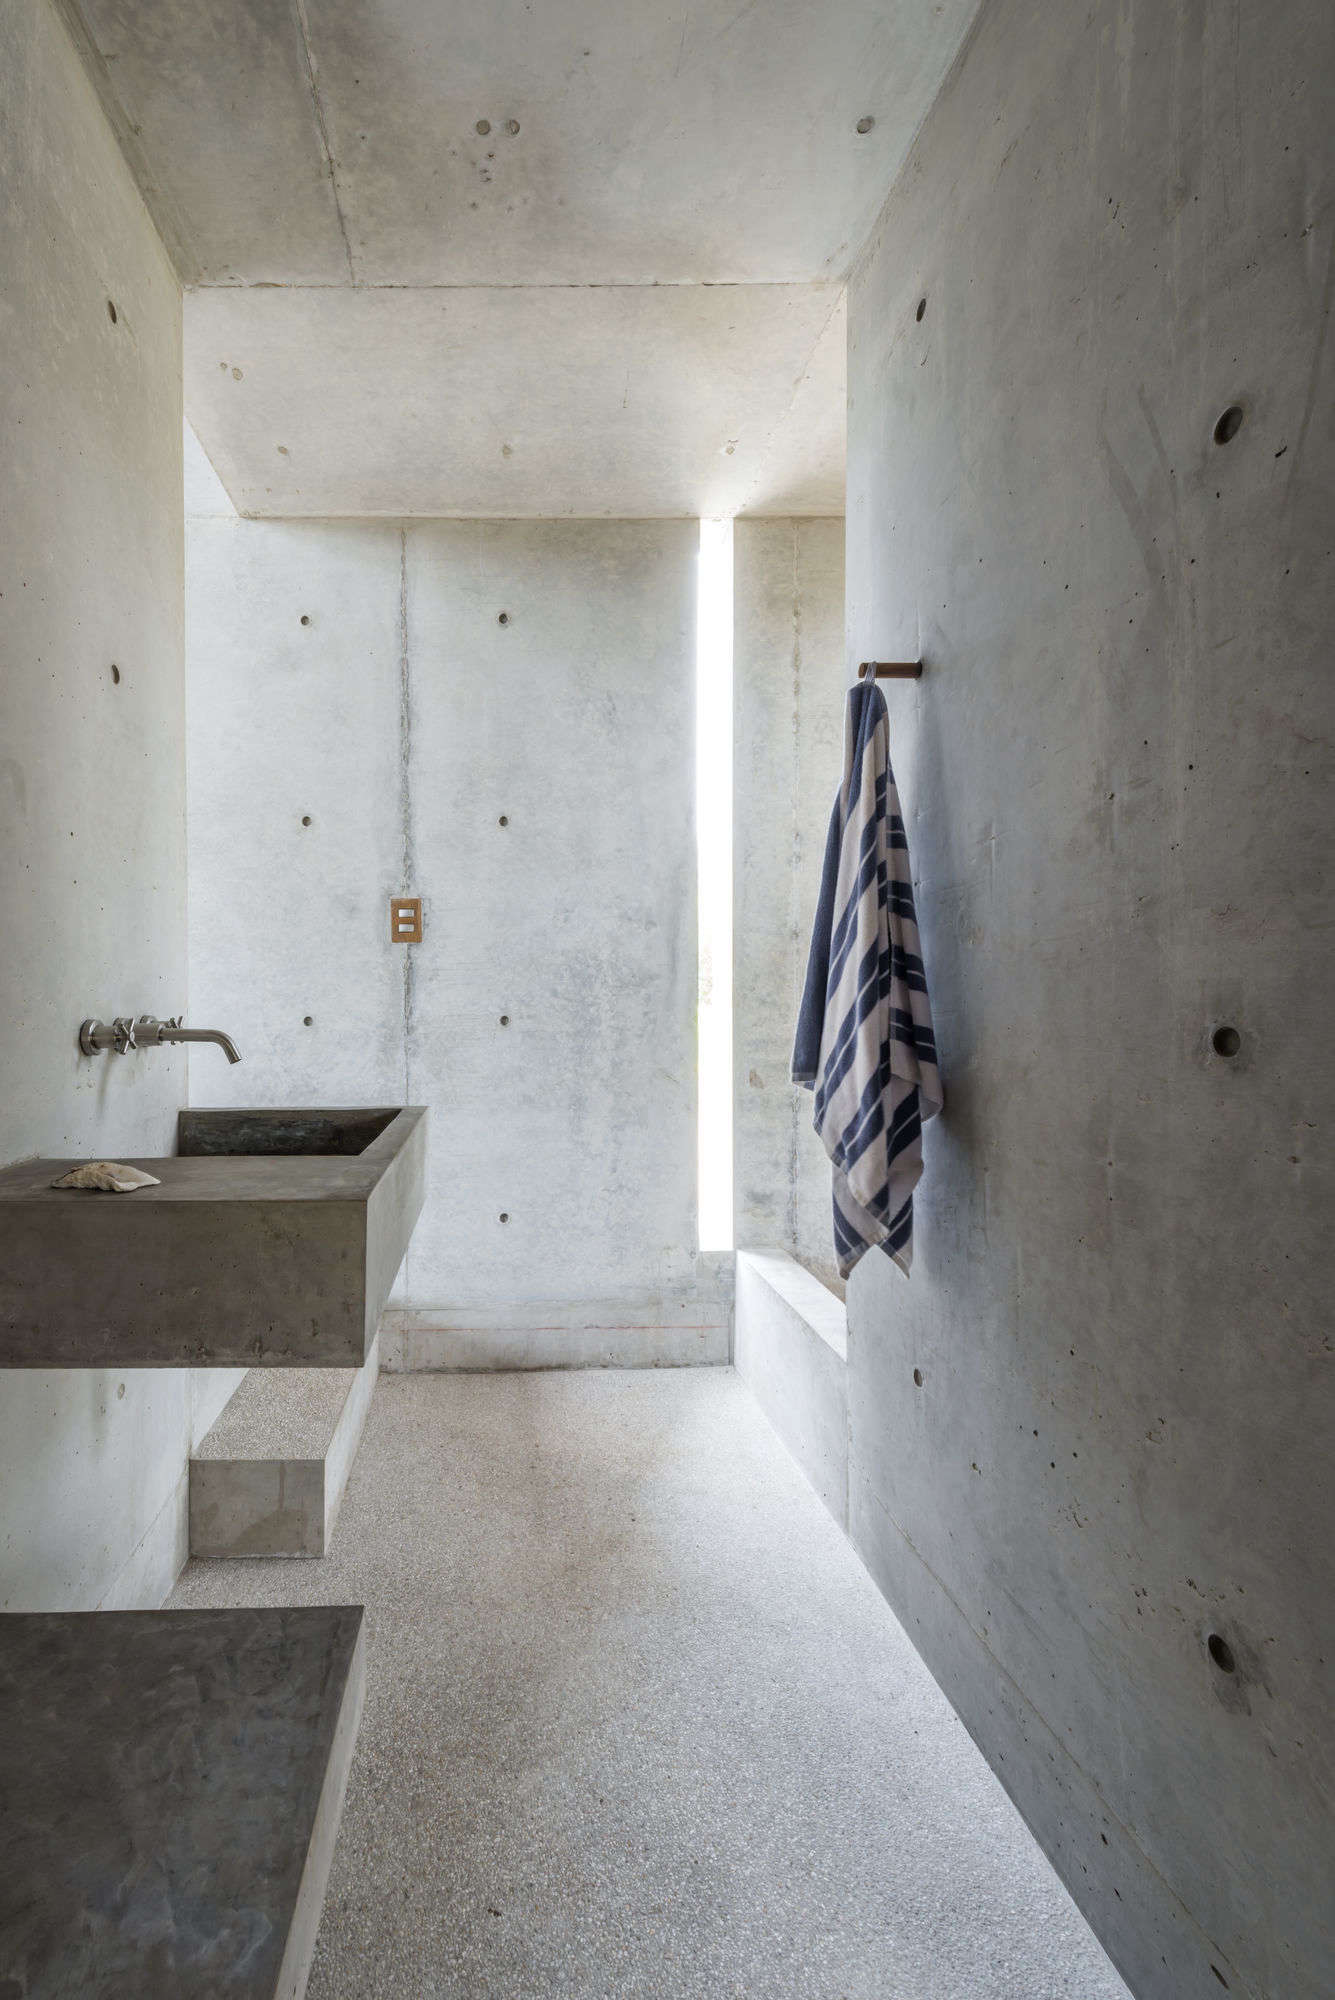 Concrete sink as sculpture: the sink in the bathroom of Casa Tiny in Oaxaca.